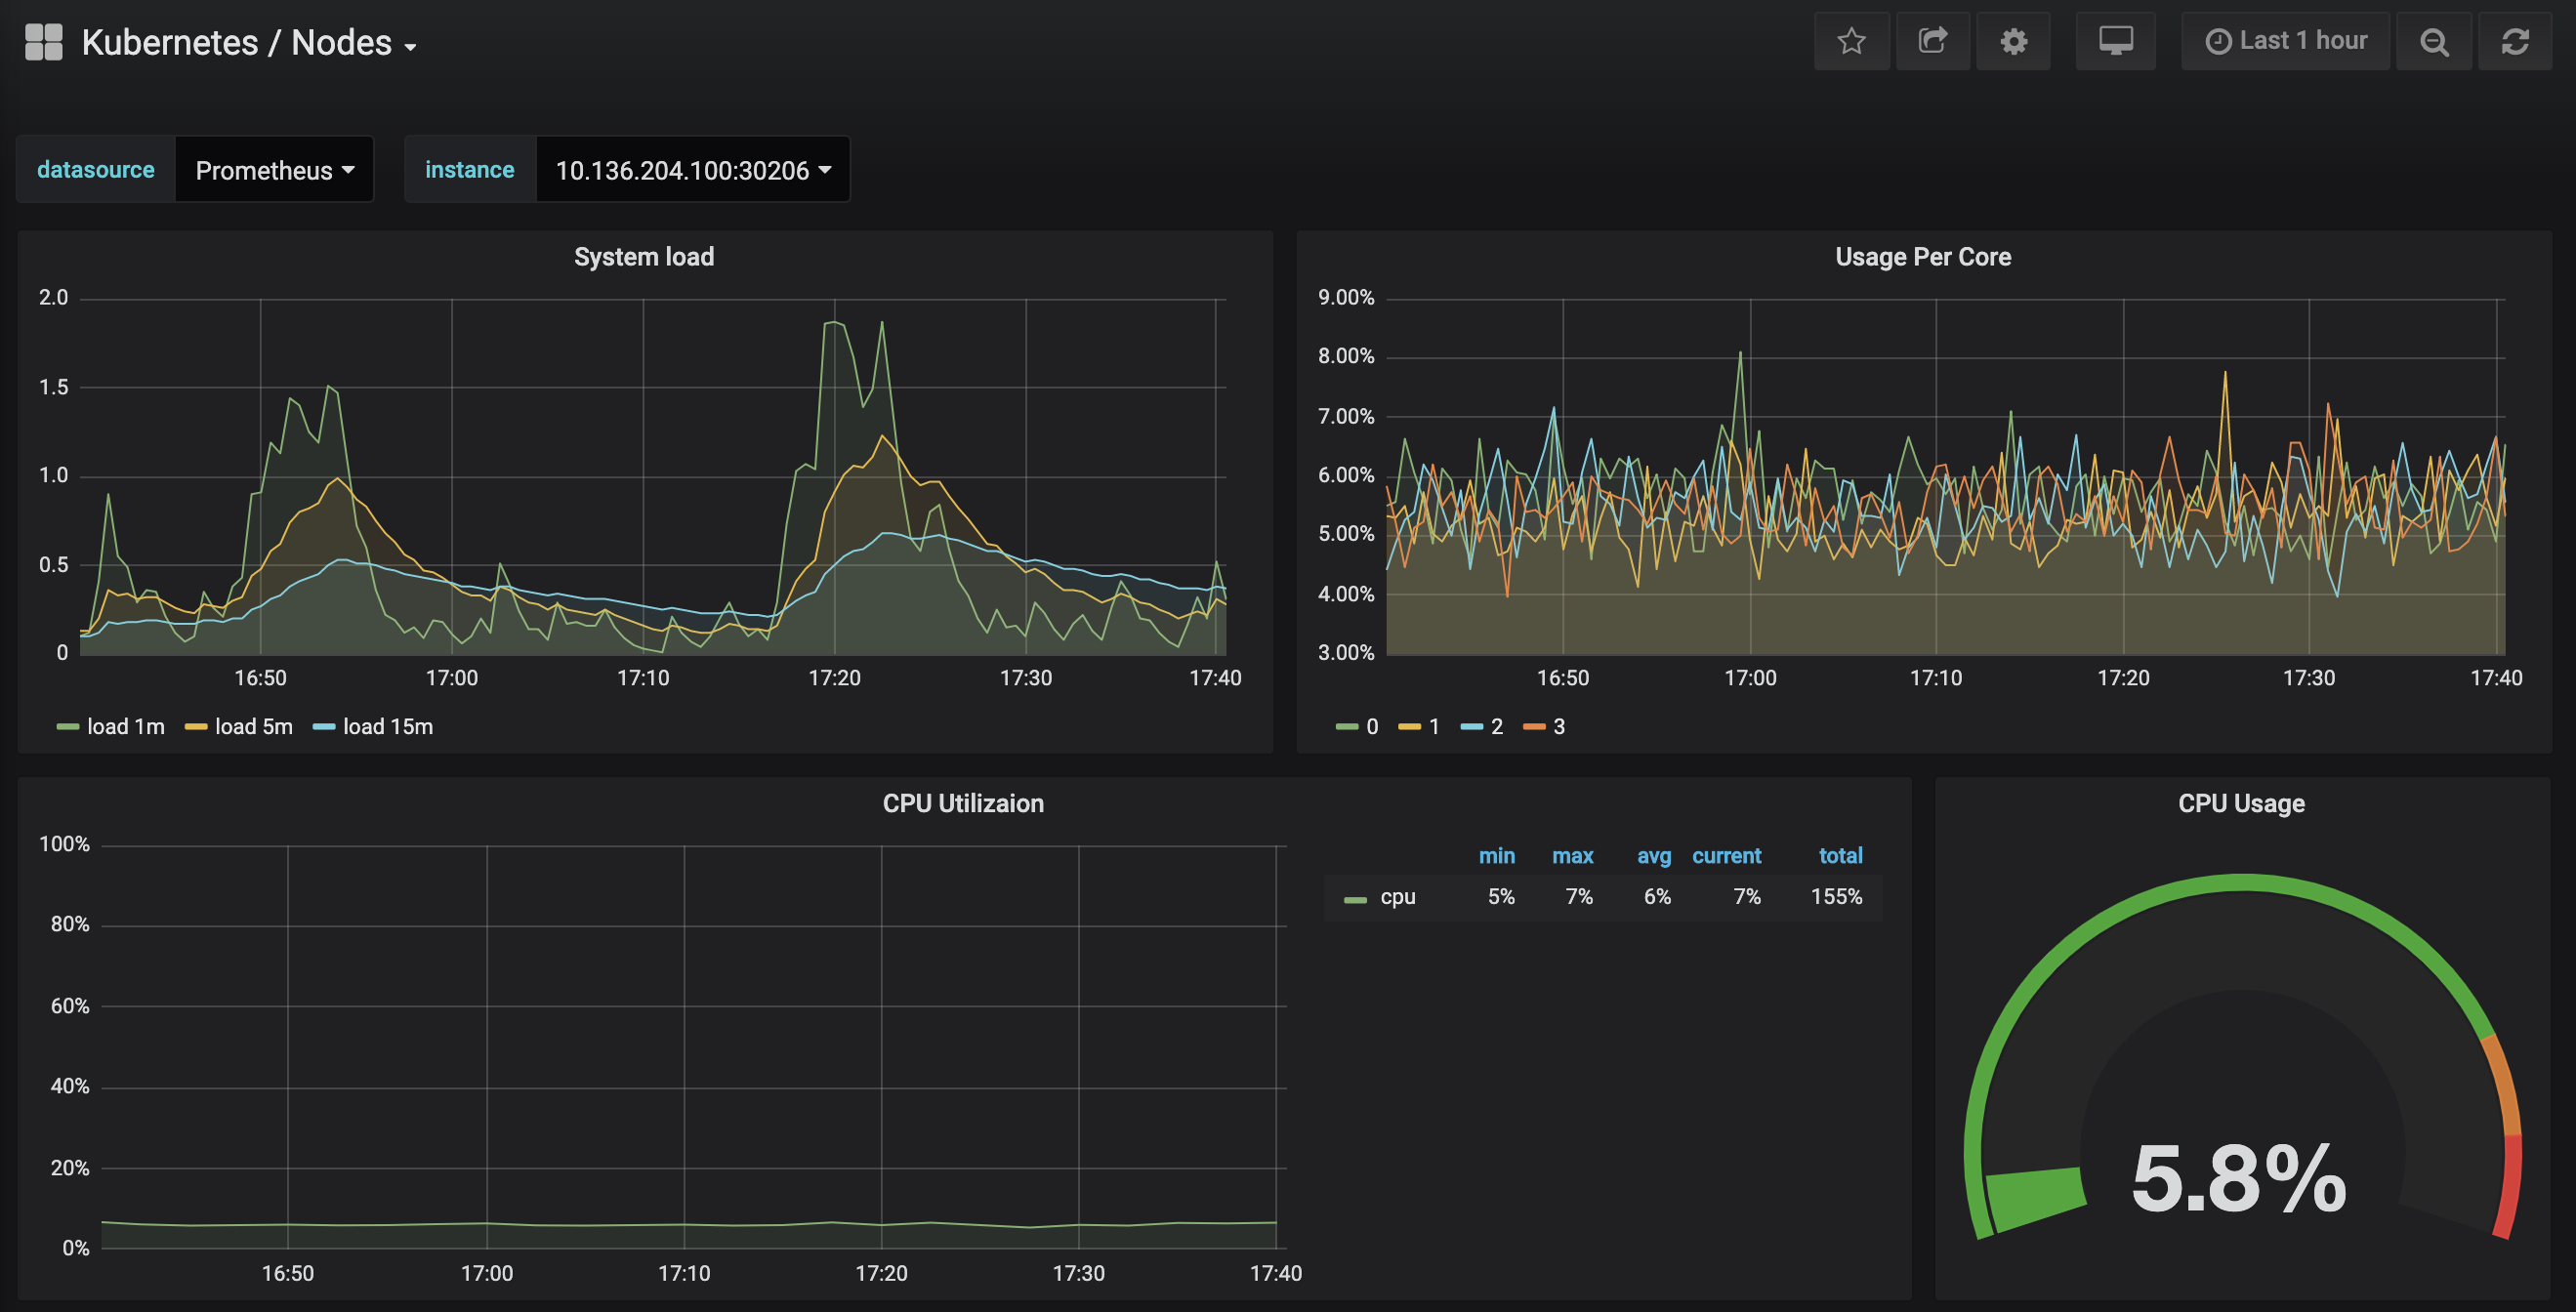 How to Set Up a Prometheus, Grafana and Alertmanager